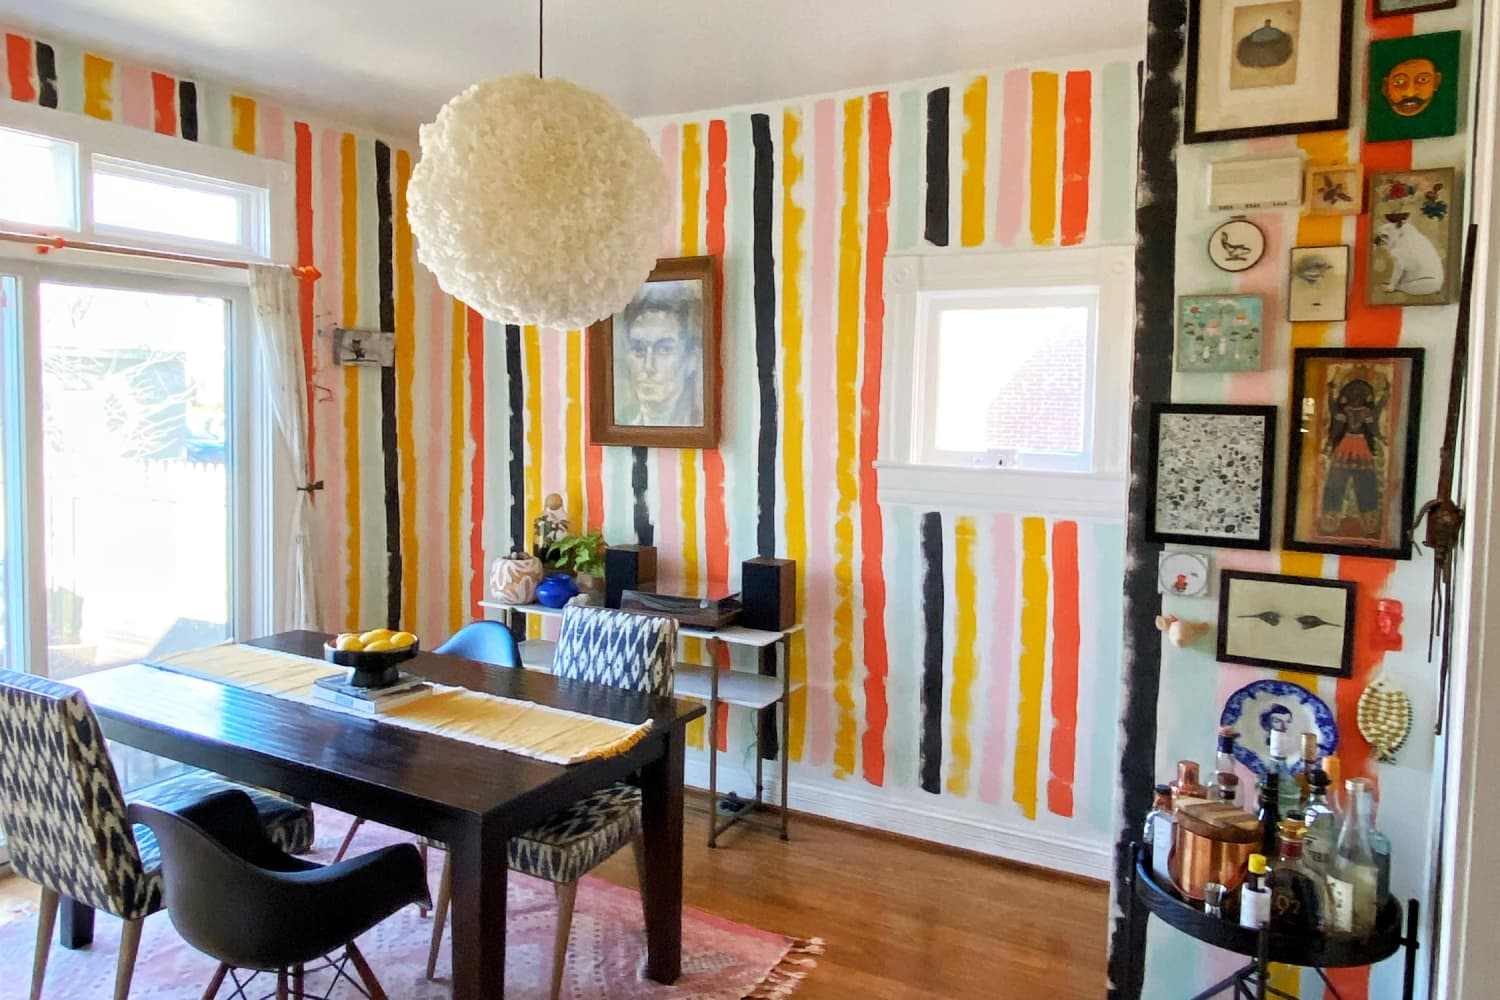 Every Room in This 115-Year-Old House Has Been Transformed With Colorful DIY Paint